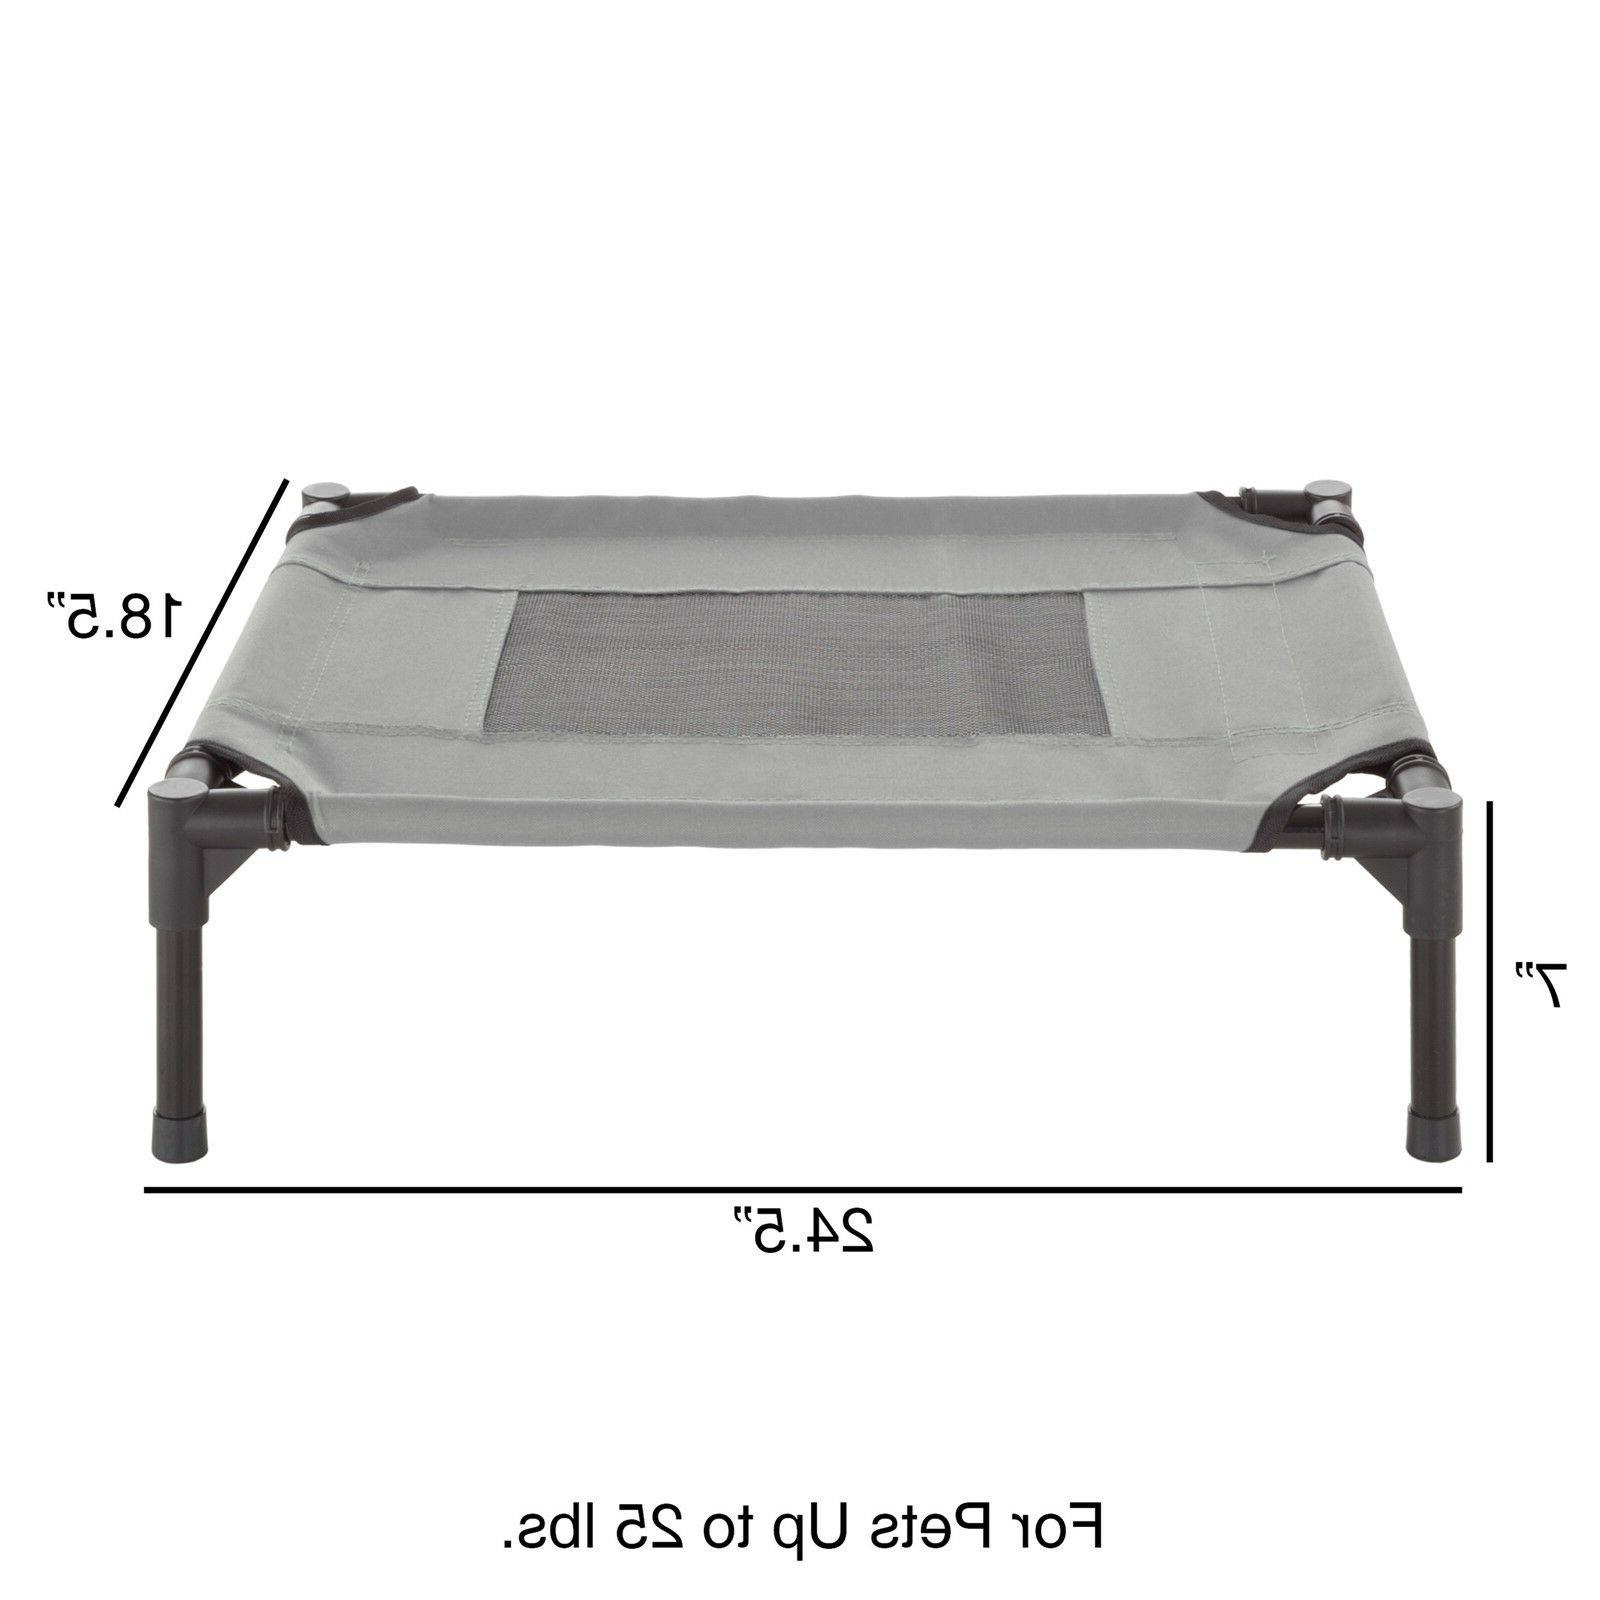 XSmall Dog Cat Bed Indoor Outdoor Elevated Cot 24 x 18 Inch Gray